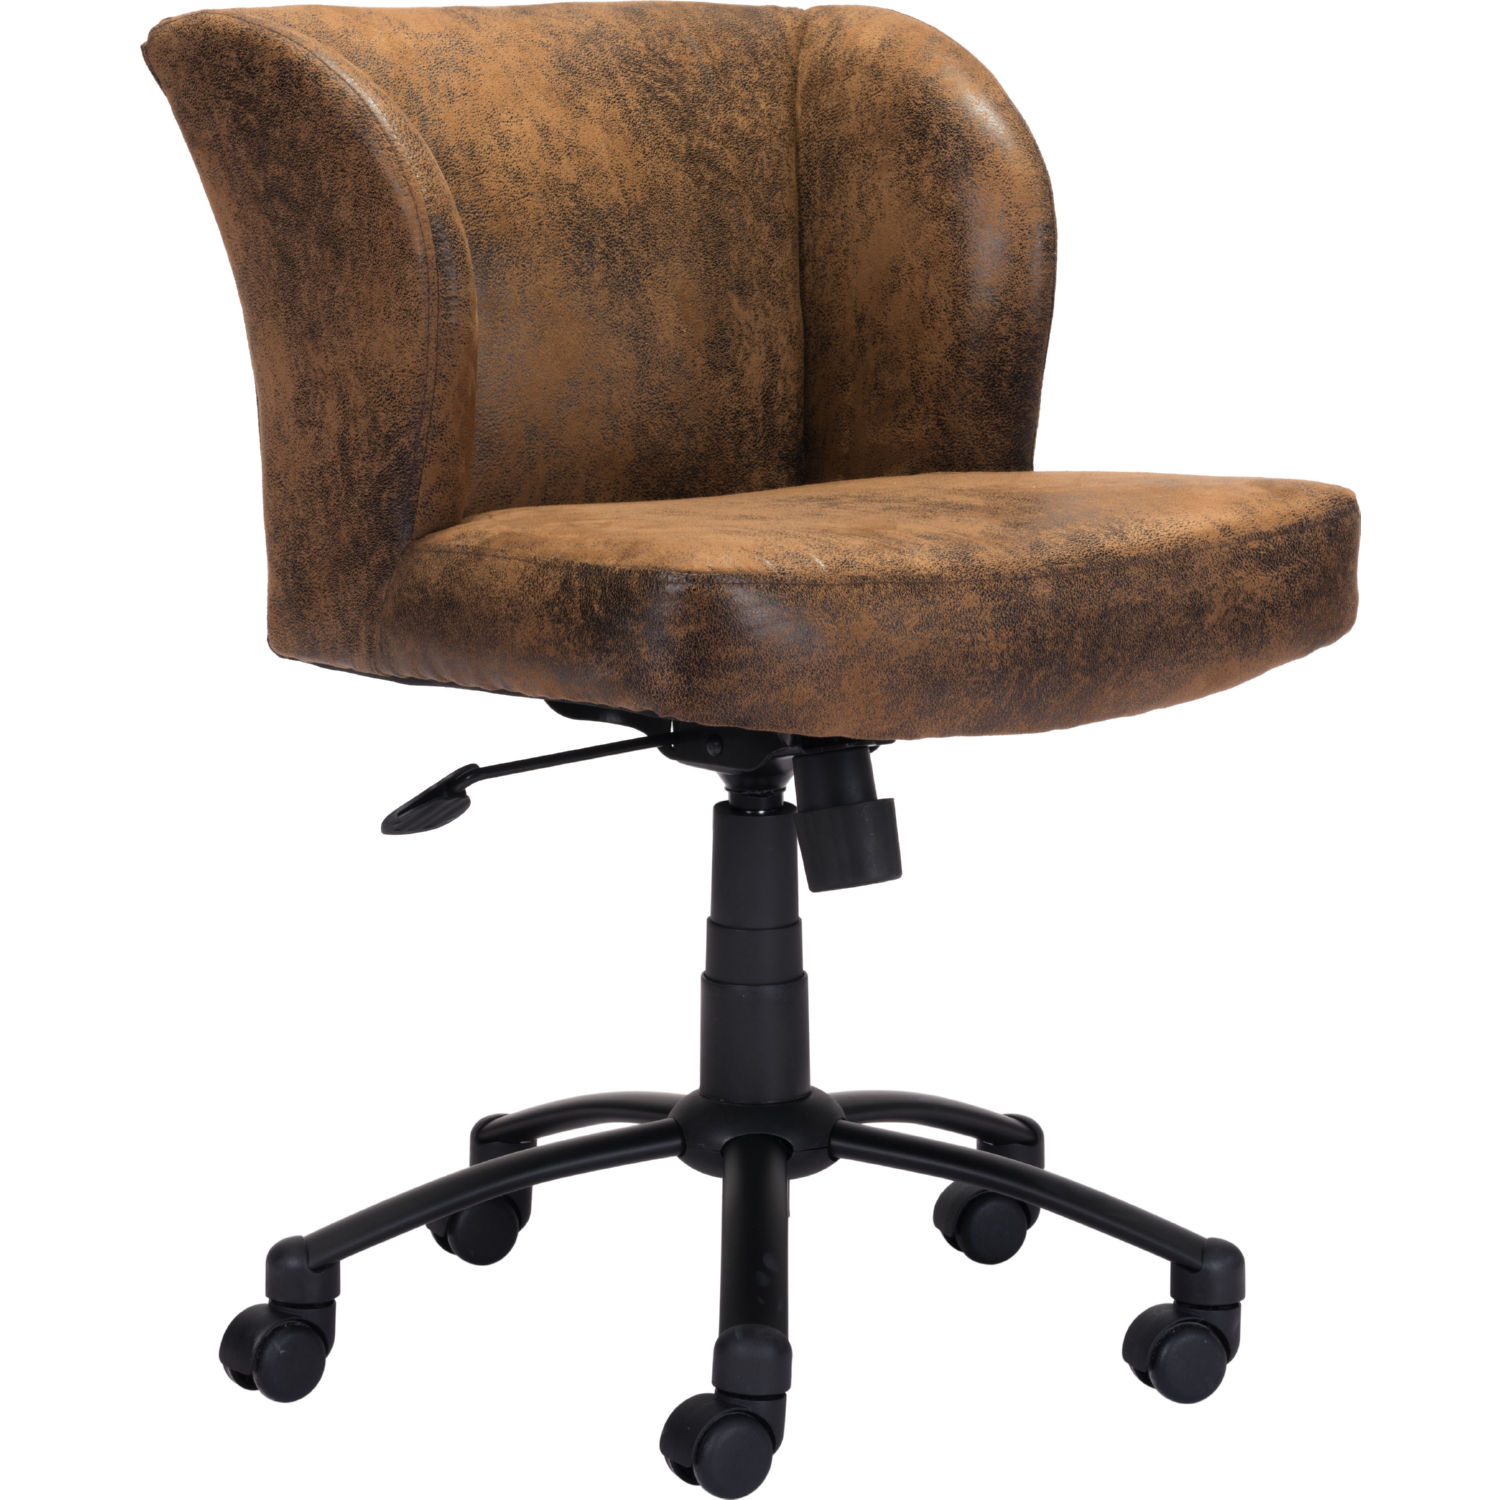 Linen Office Chair Shaw Office Chair In Brown Poly Linen On Black Steel By Zuo